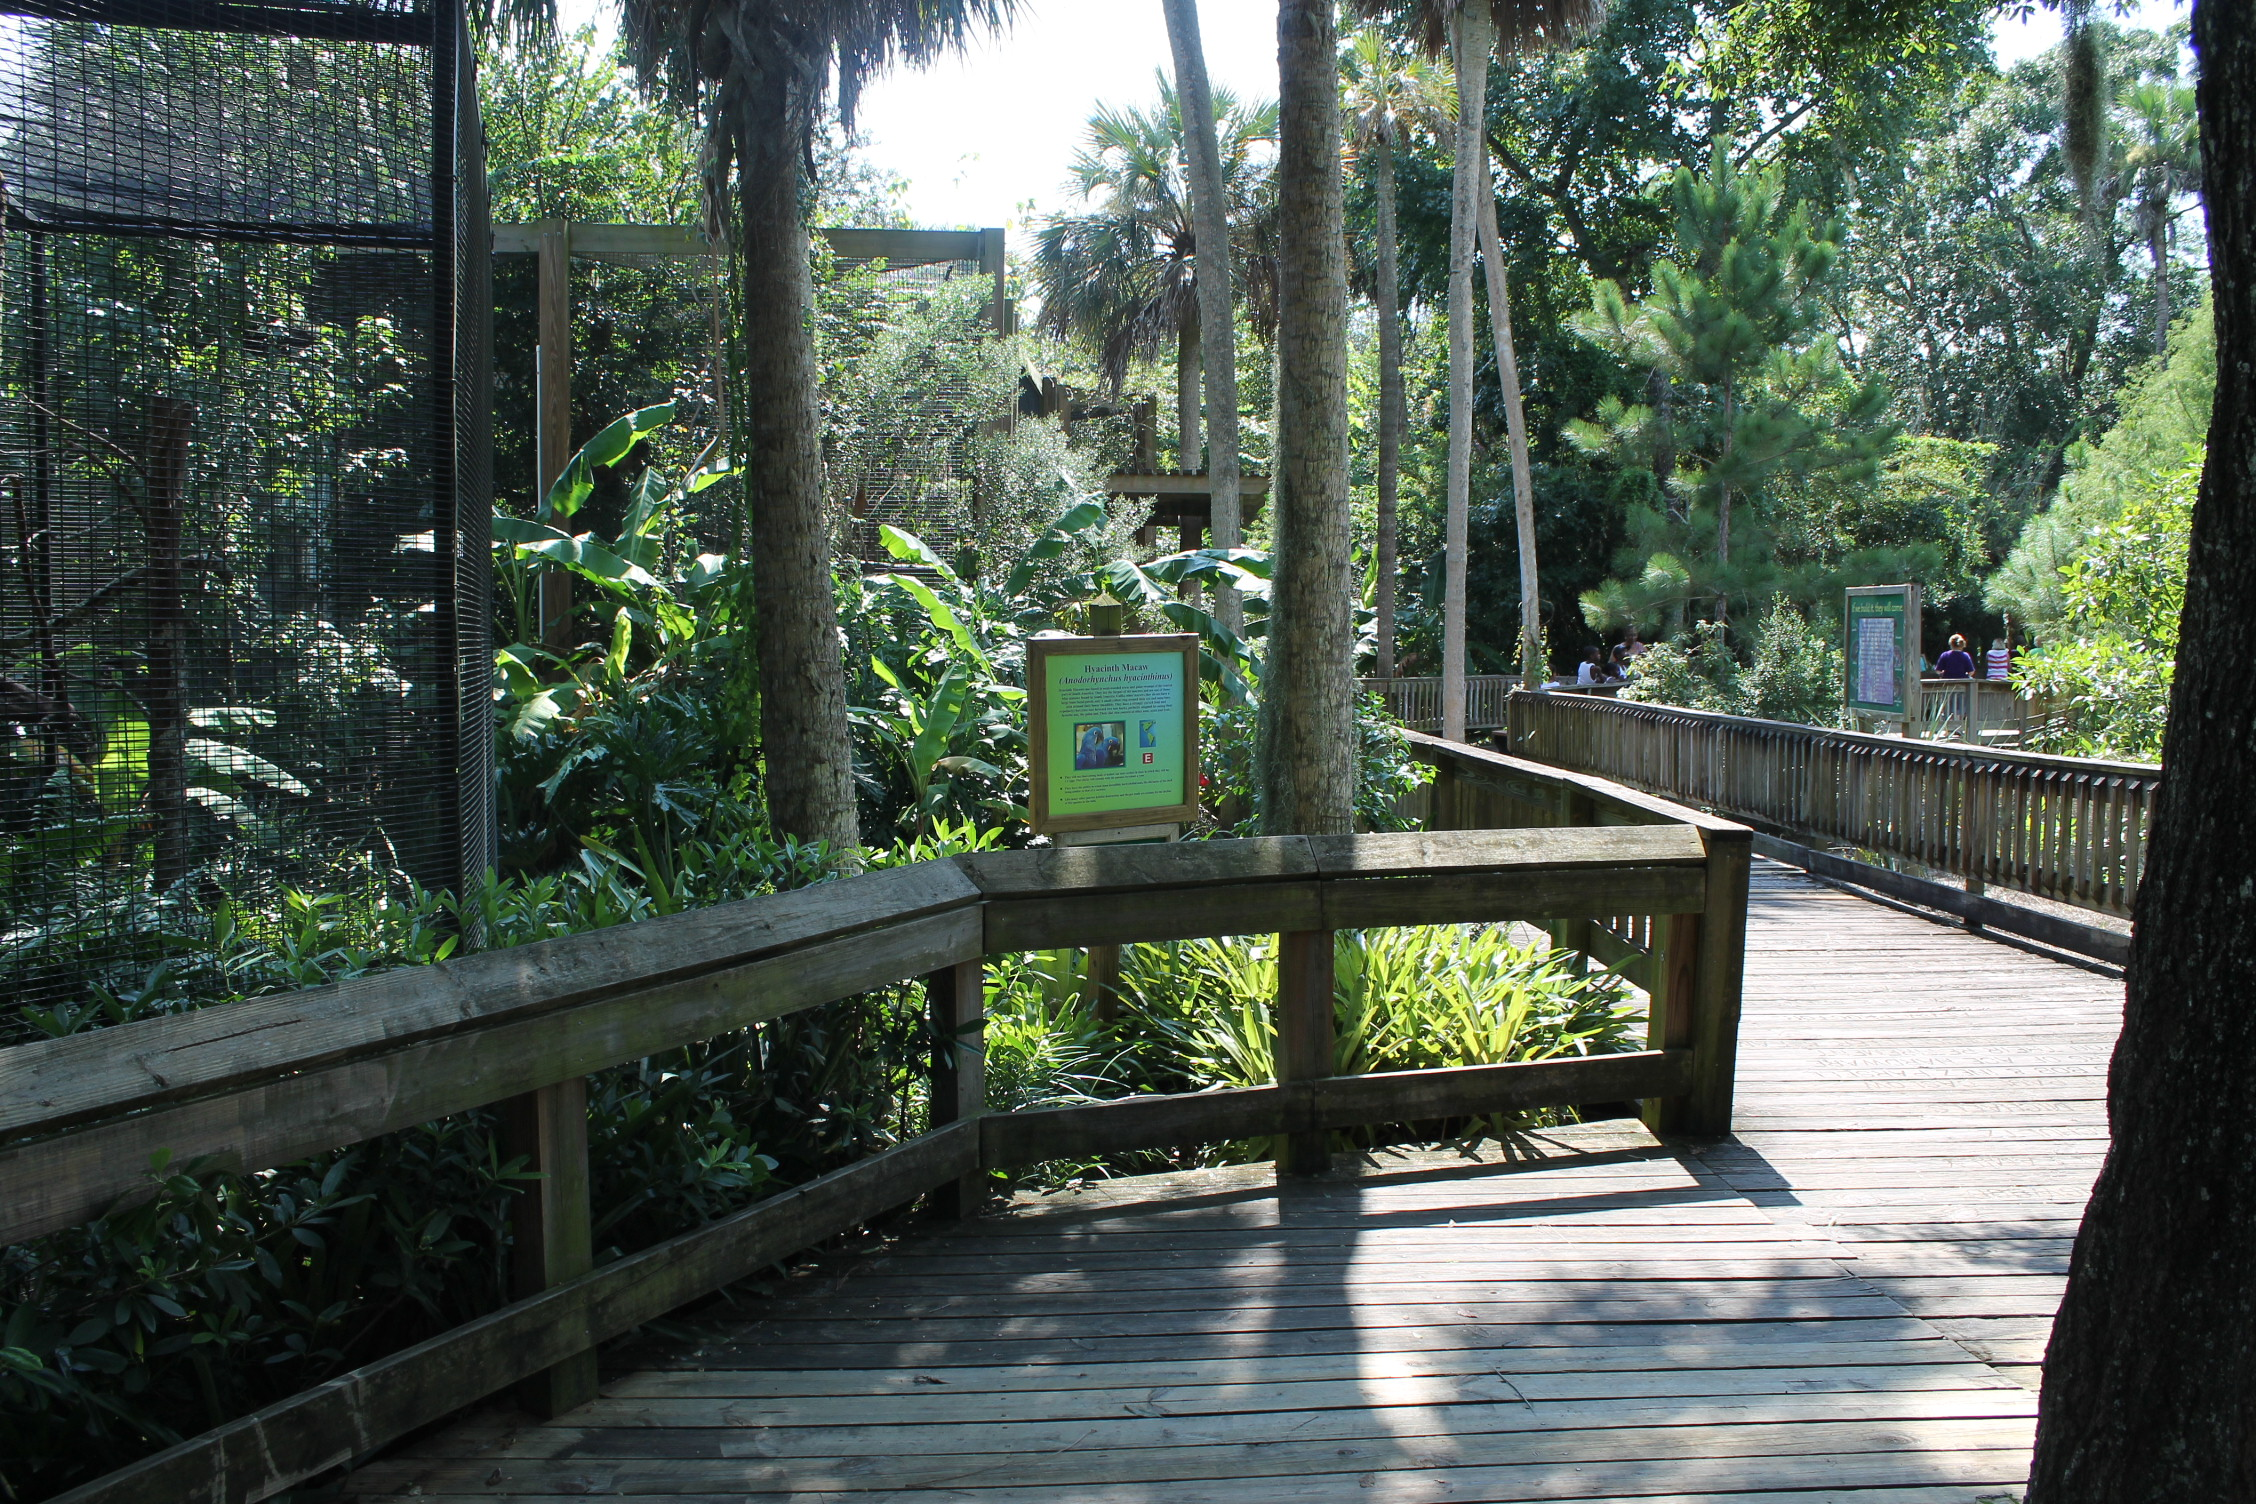 Zoo clipart pathway Of both Zoo Central of